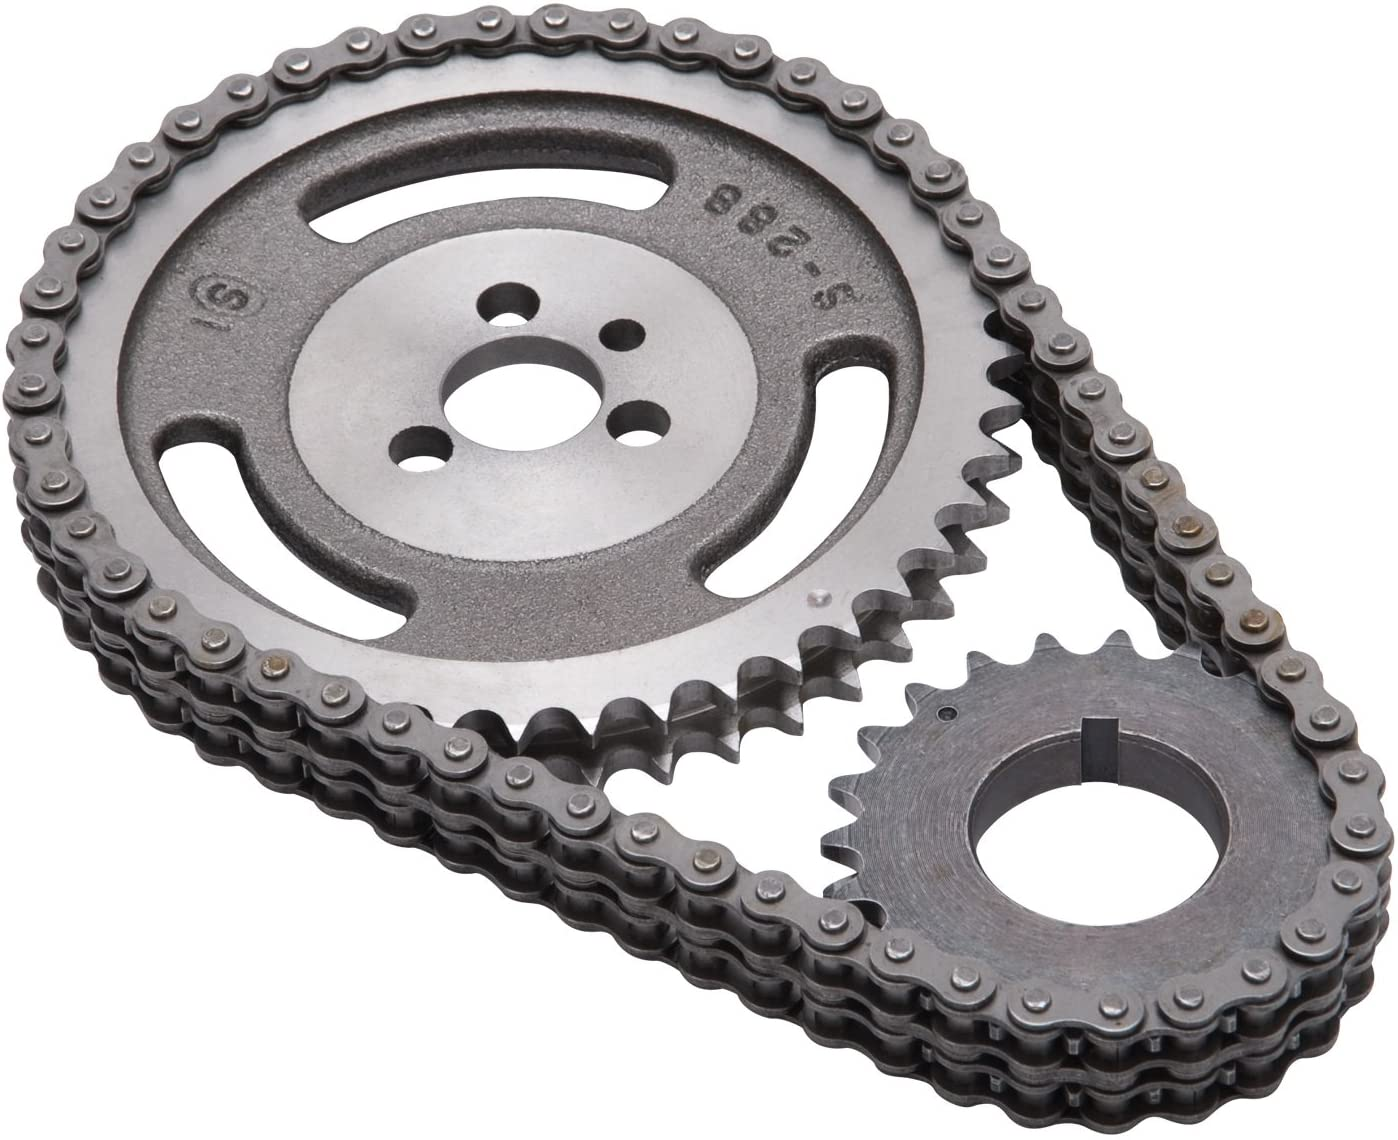 Edelbrock 7802 Performer-Link Timing service and Gear High quality Chain Set